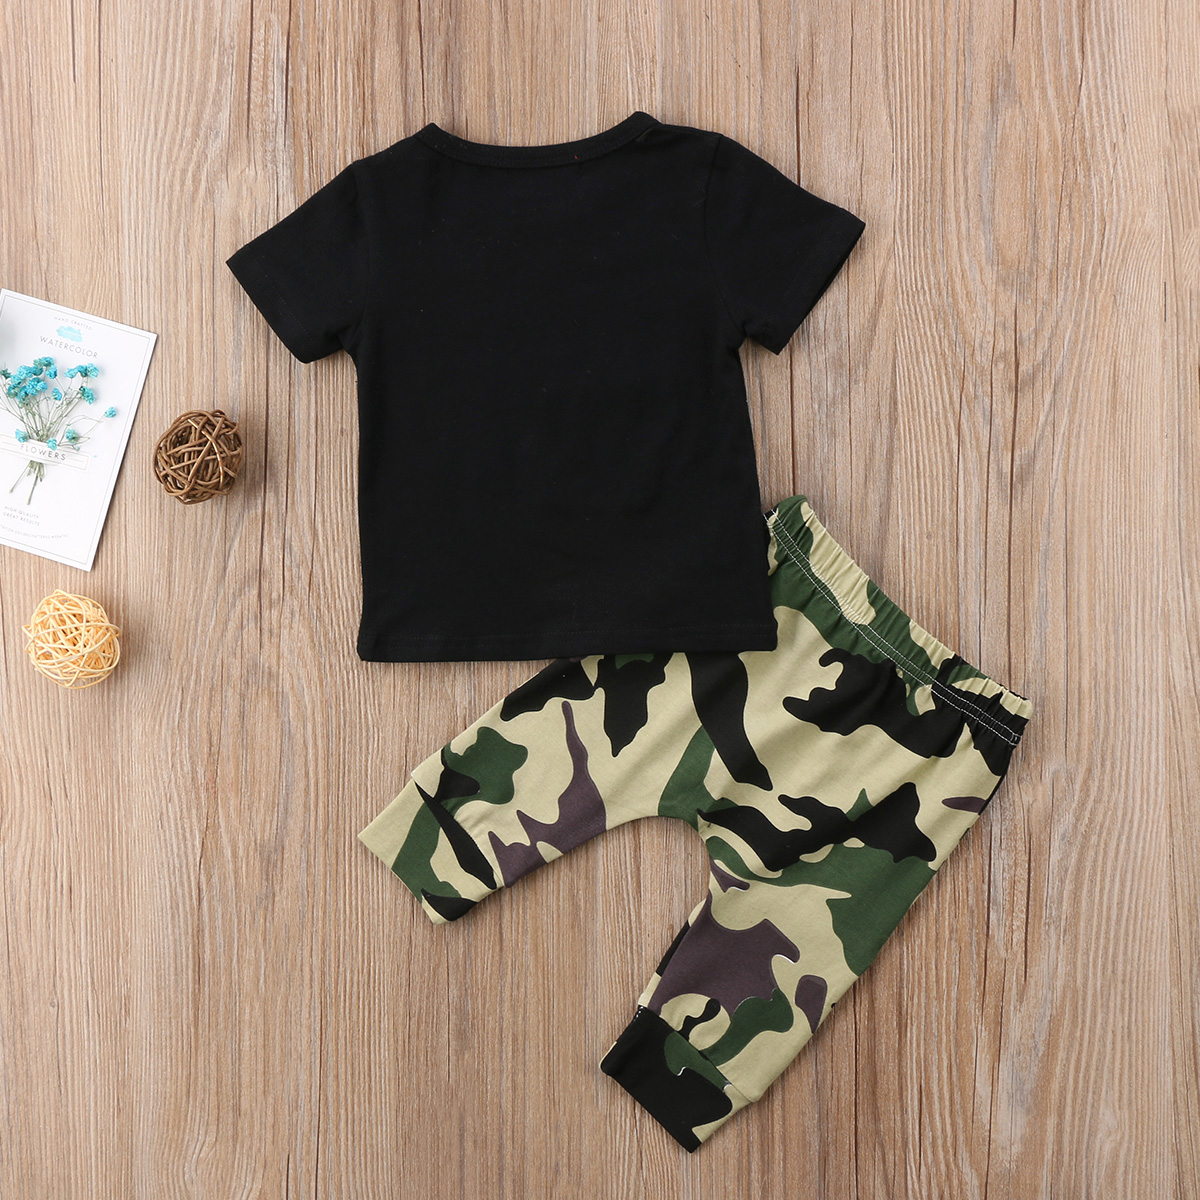 b54812258 Aliexpress.com : Buy 2pcs Cool Baby Boy Short Sleeve Swag T shirt Tops+Camouflage  Pants Leggings Outfit Toddler Kids Summer Clothes Set from Reliable baby ...